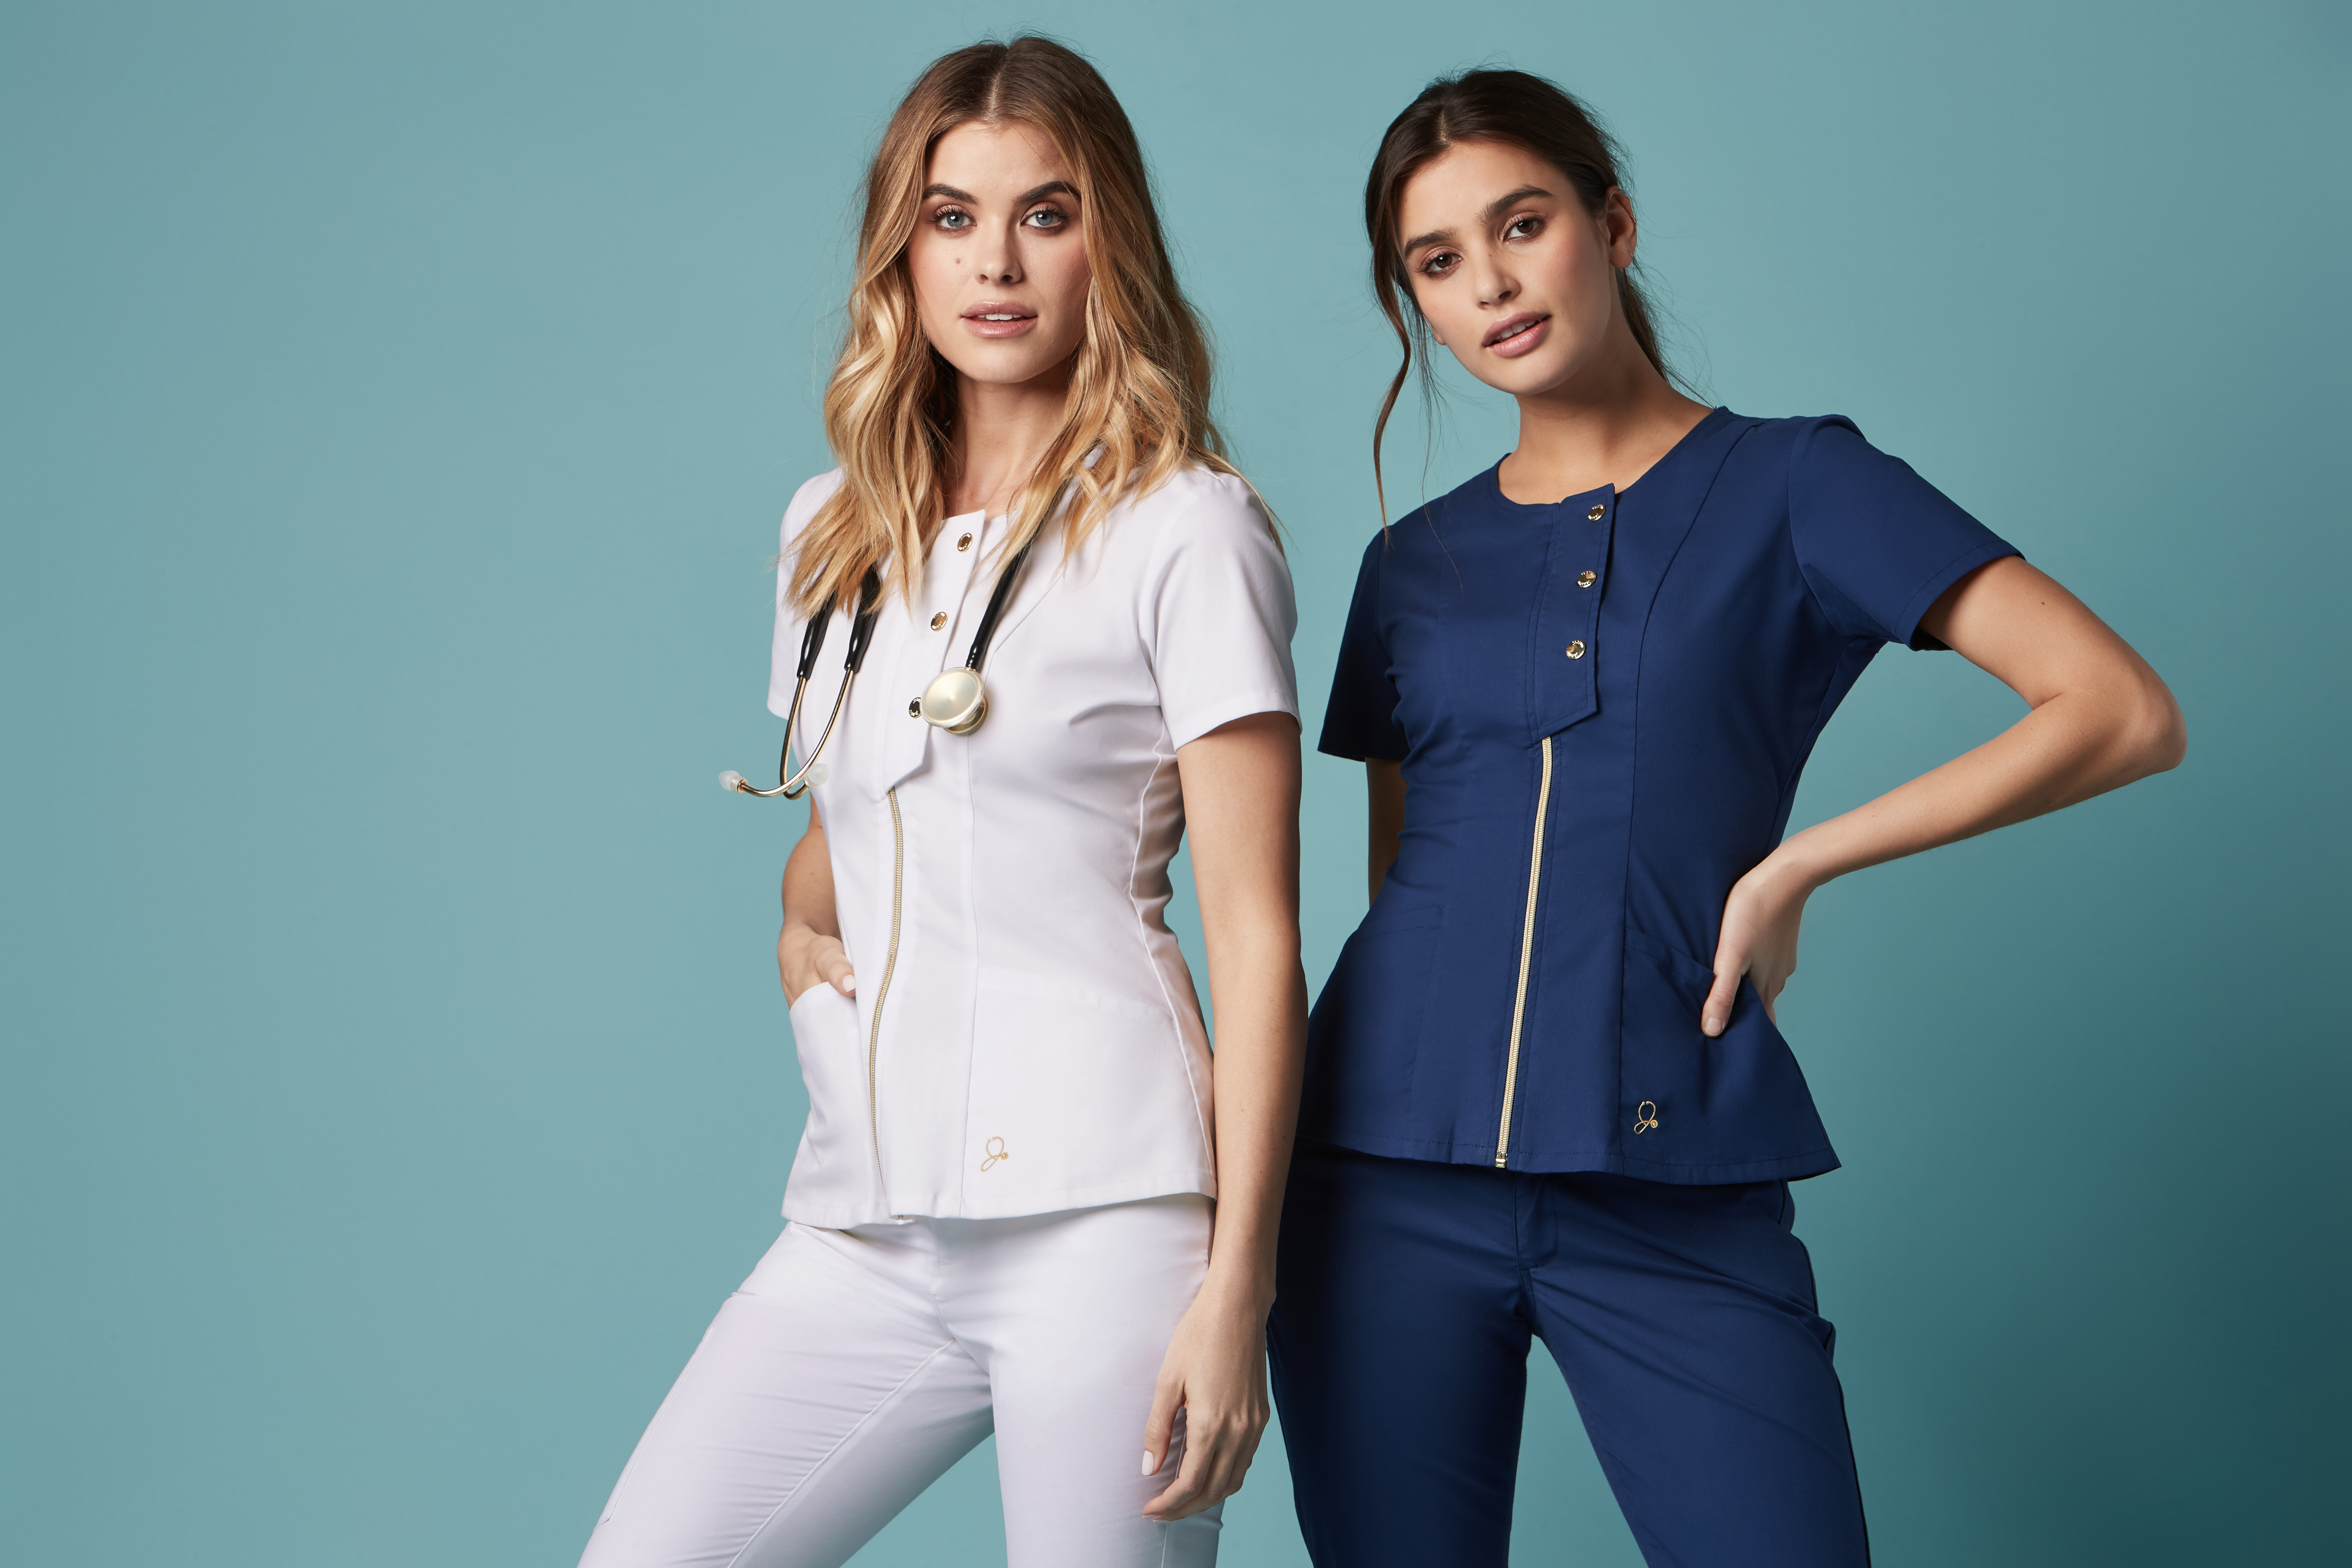 This company is making stylish scrubs so doctors and nurses can express themselves while on the job